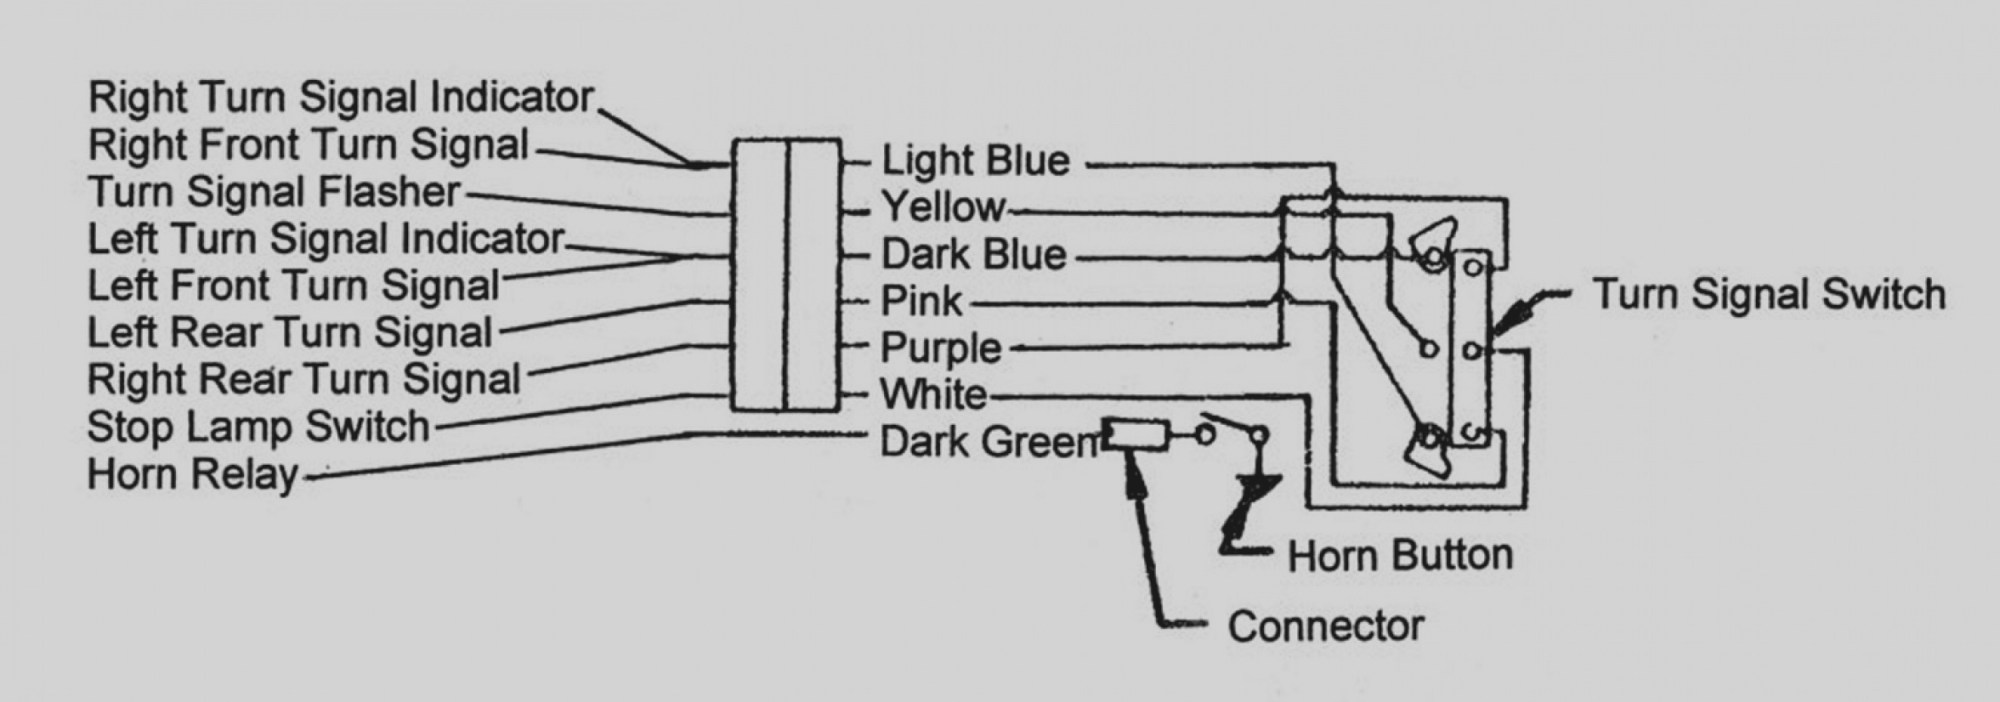 hight resolution of ford turn signal wiring harness wiring diagram name ford turn signal switch wiring wiring diagram meta